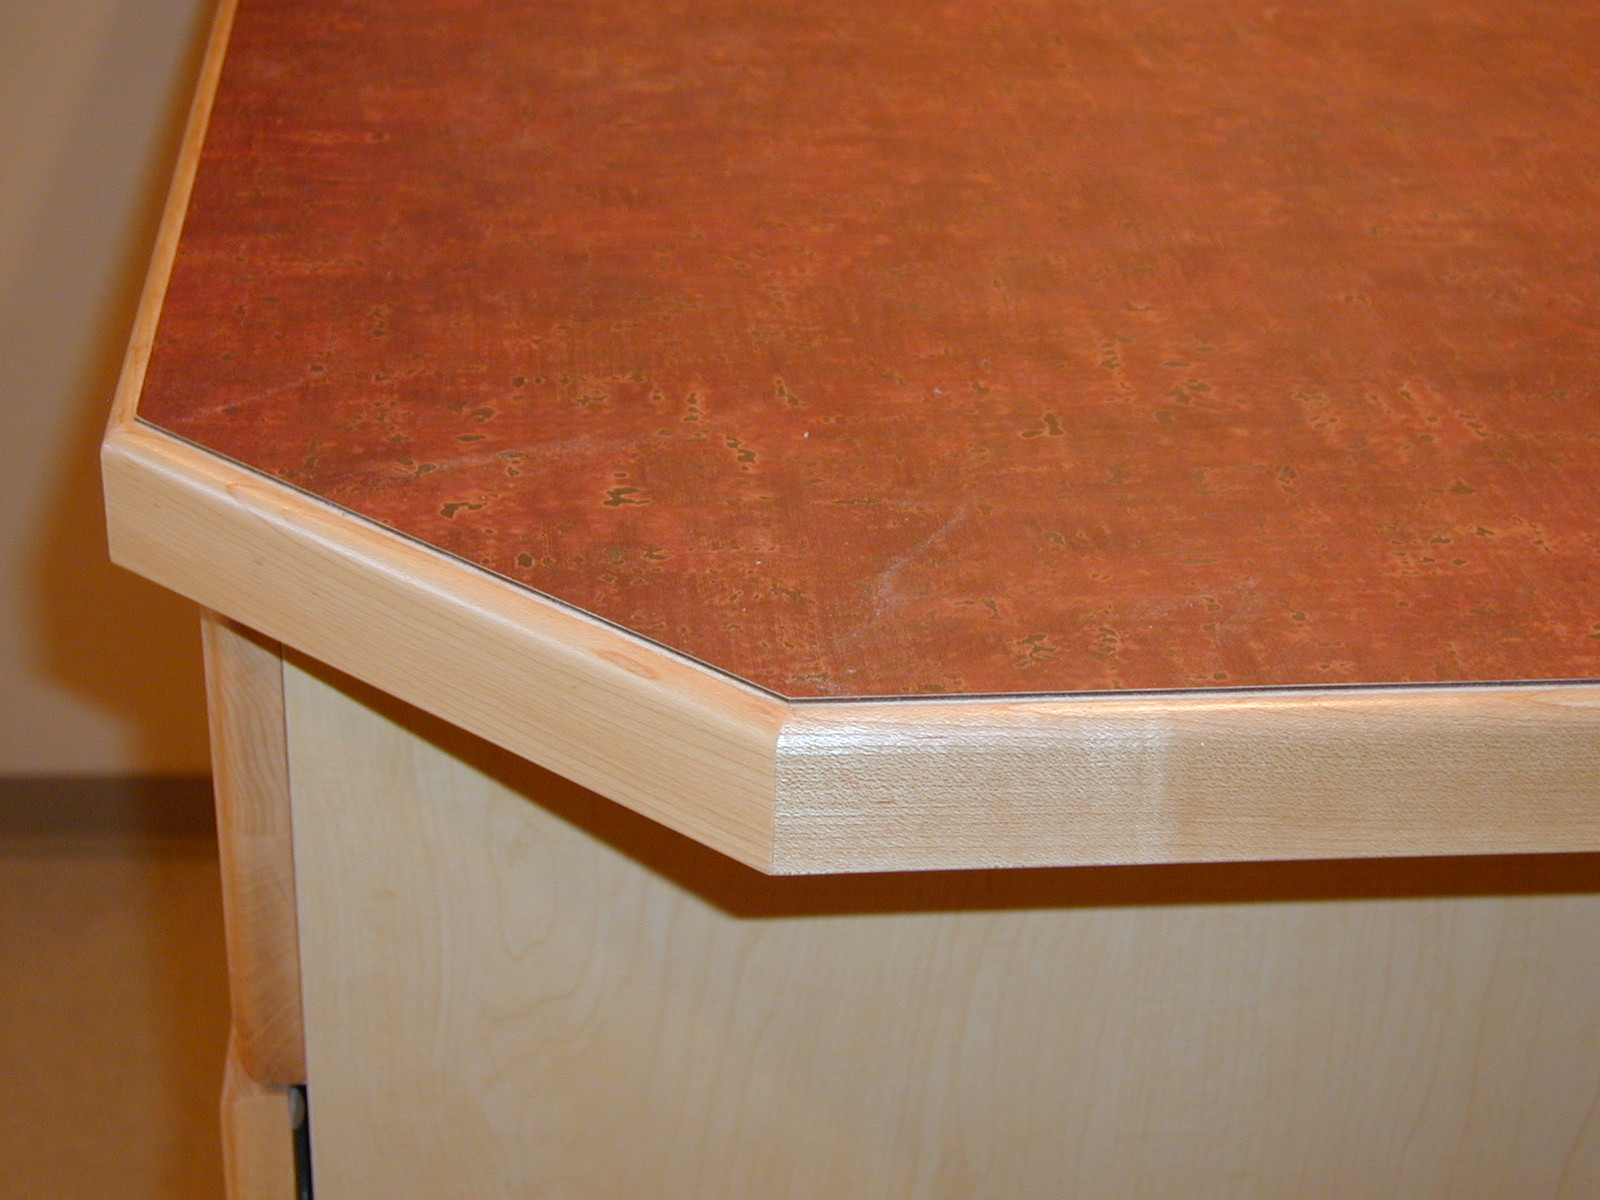 Countertop Edging Trim - Bing Images | Laminate Countertop Trim ...